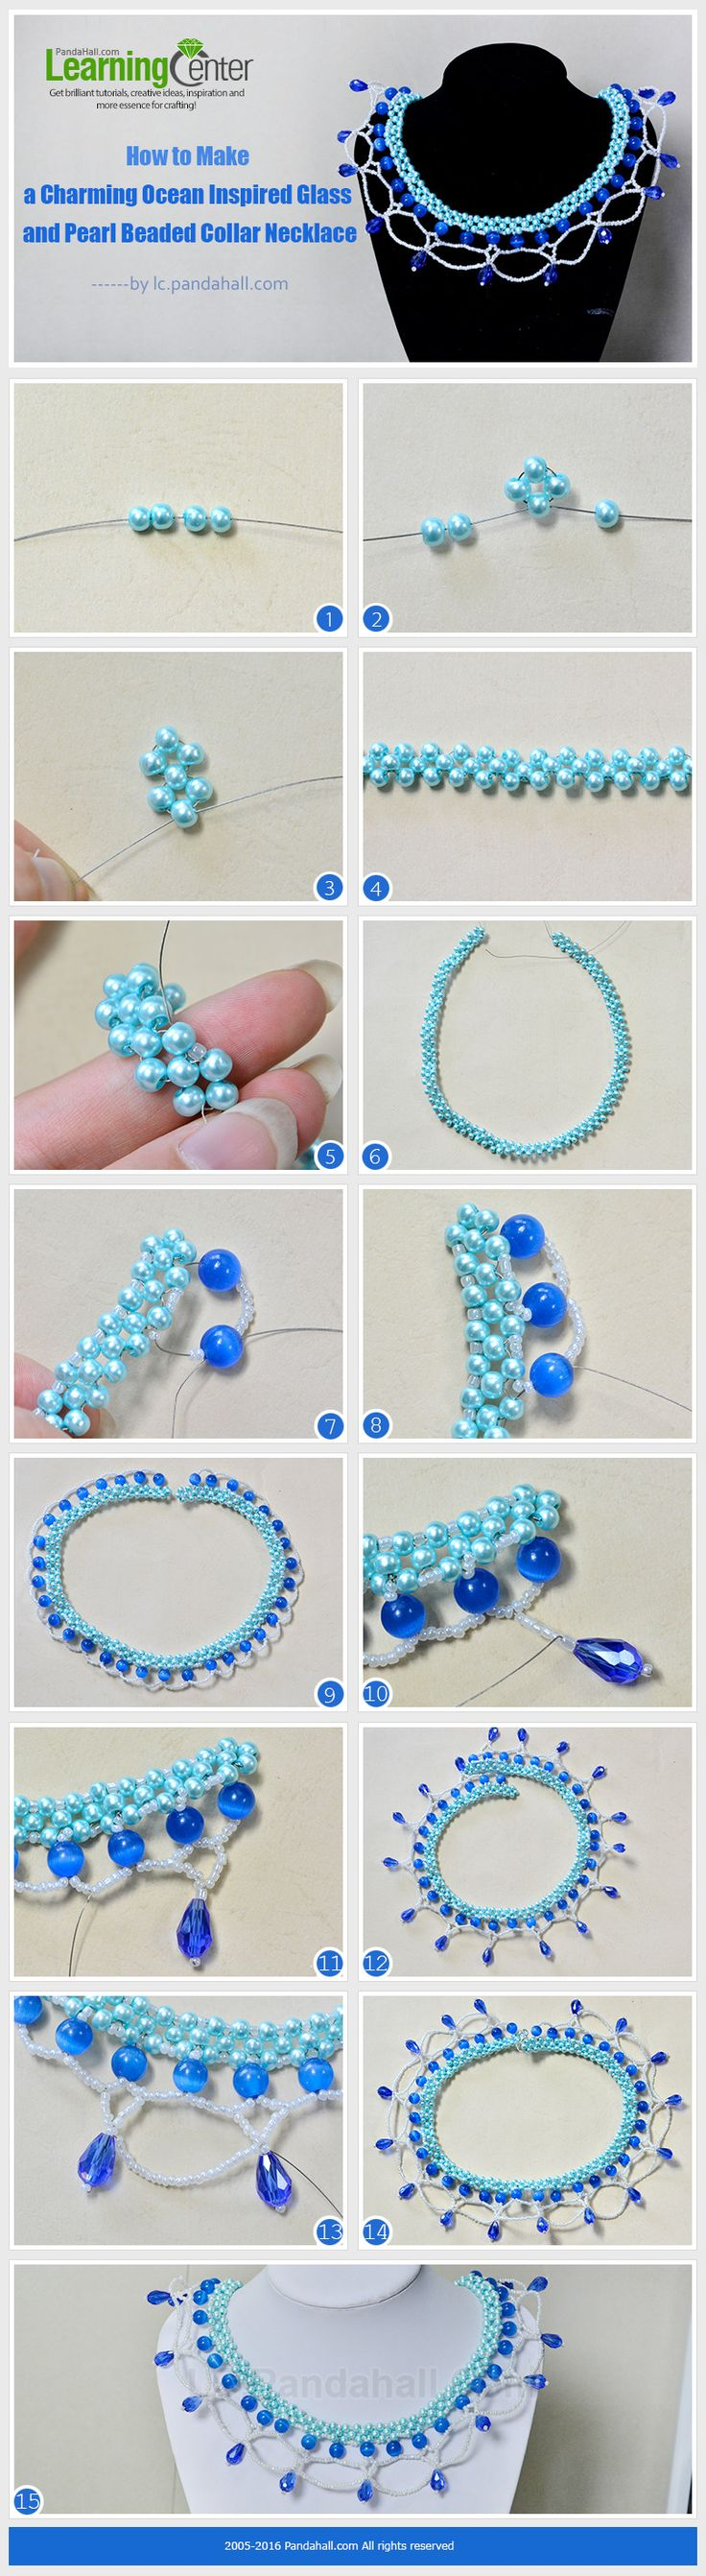 How to Make a Charming Ocean Inspired Glass and Pearl Beaded Collar Necklace from LC.Pandahall.com